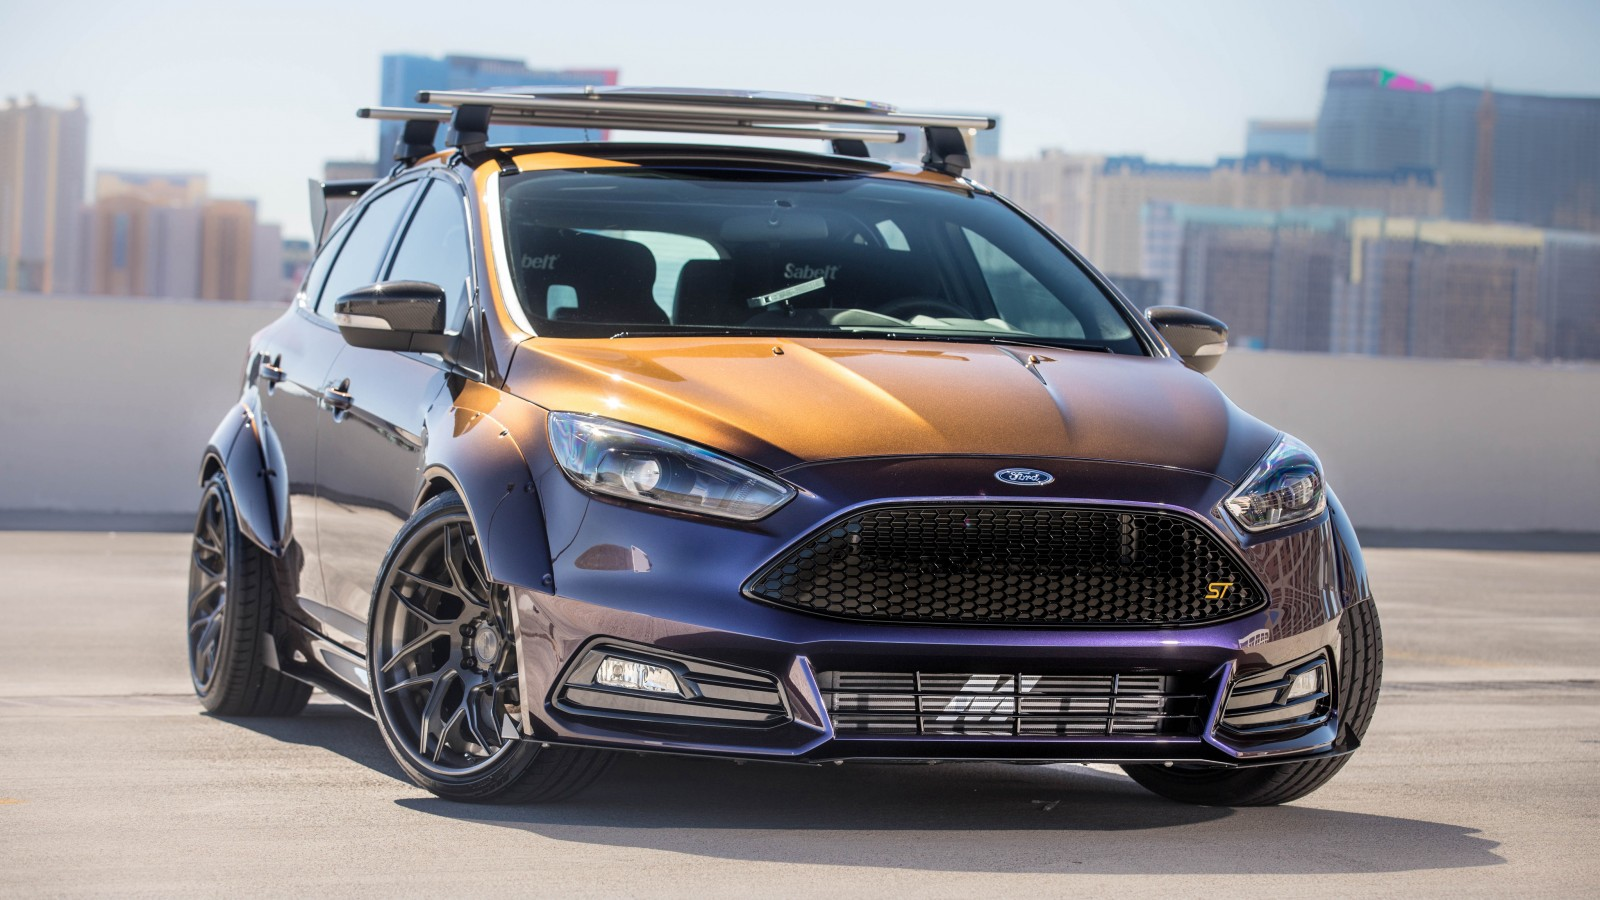 2017 Ford Focus St By Blood Type Racing 4k Wallpaper Hd